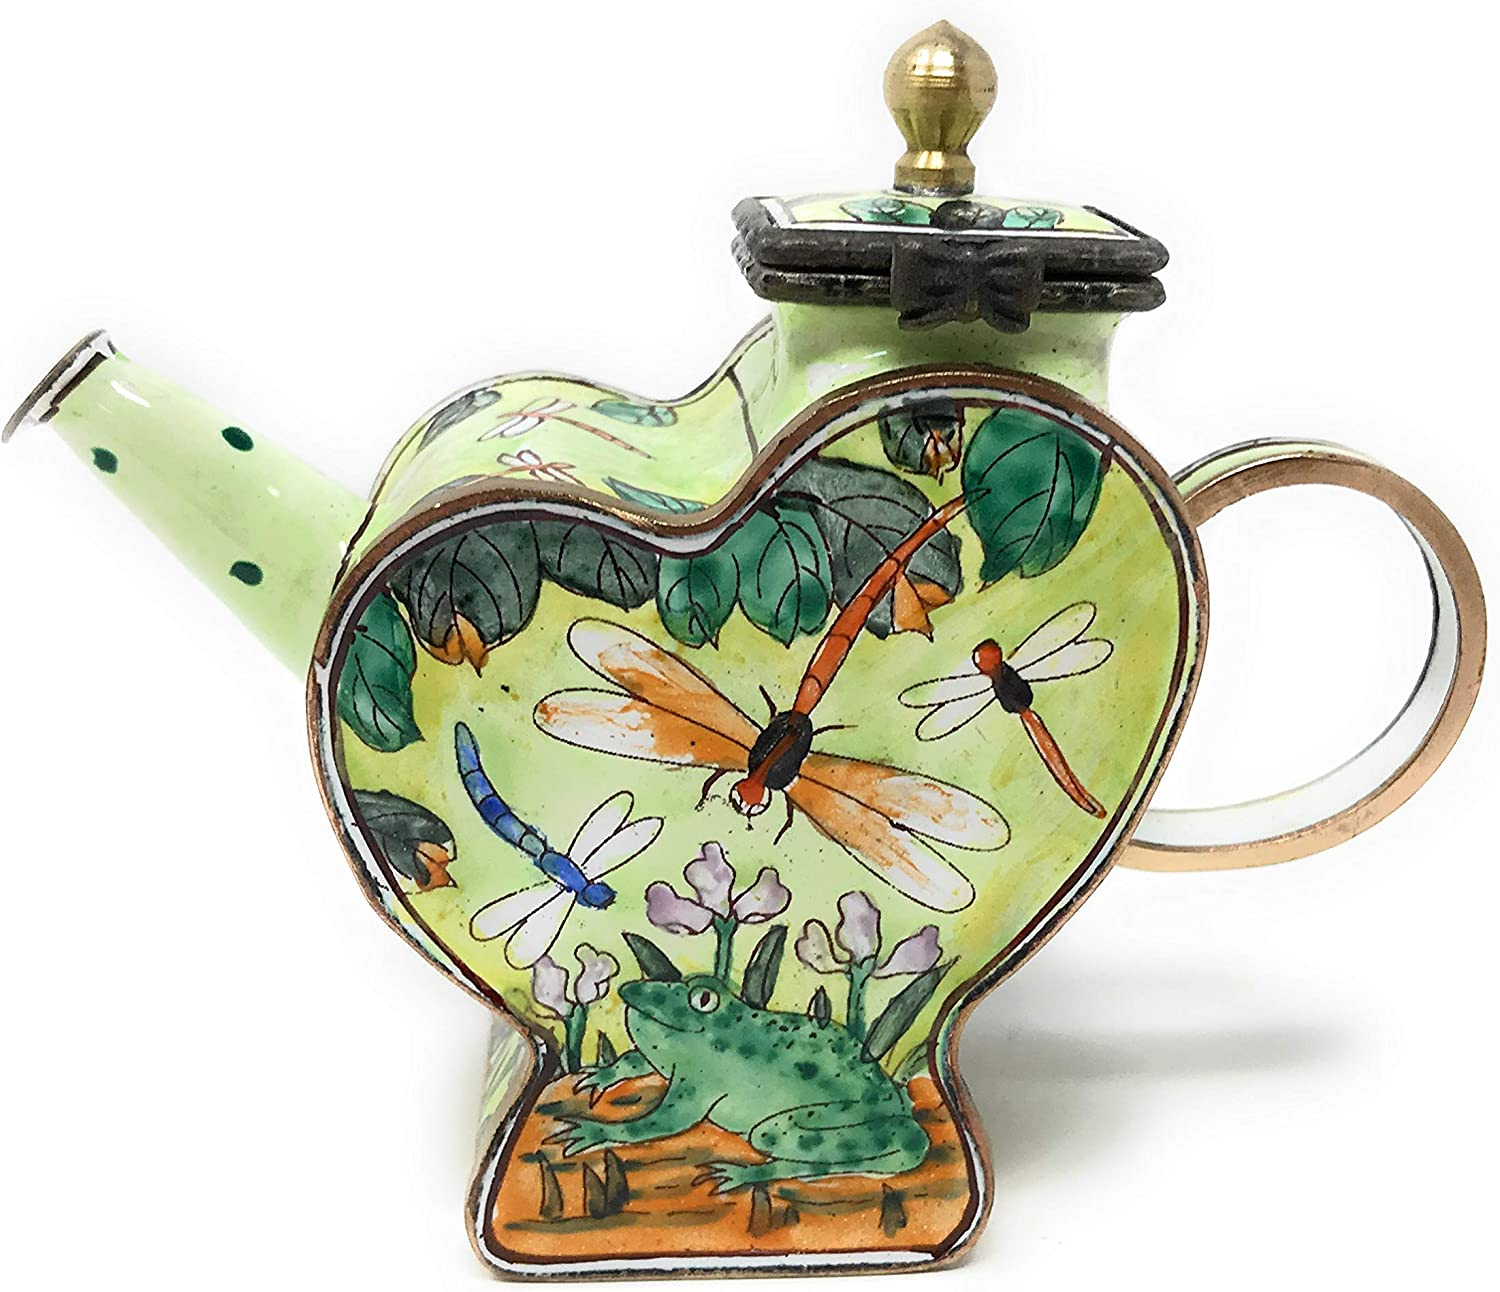 Kelvin Chen Dragonflies and Frog Enameled Miniature Heart Teapot with Hinged Lid, 4.25 Inches Long